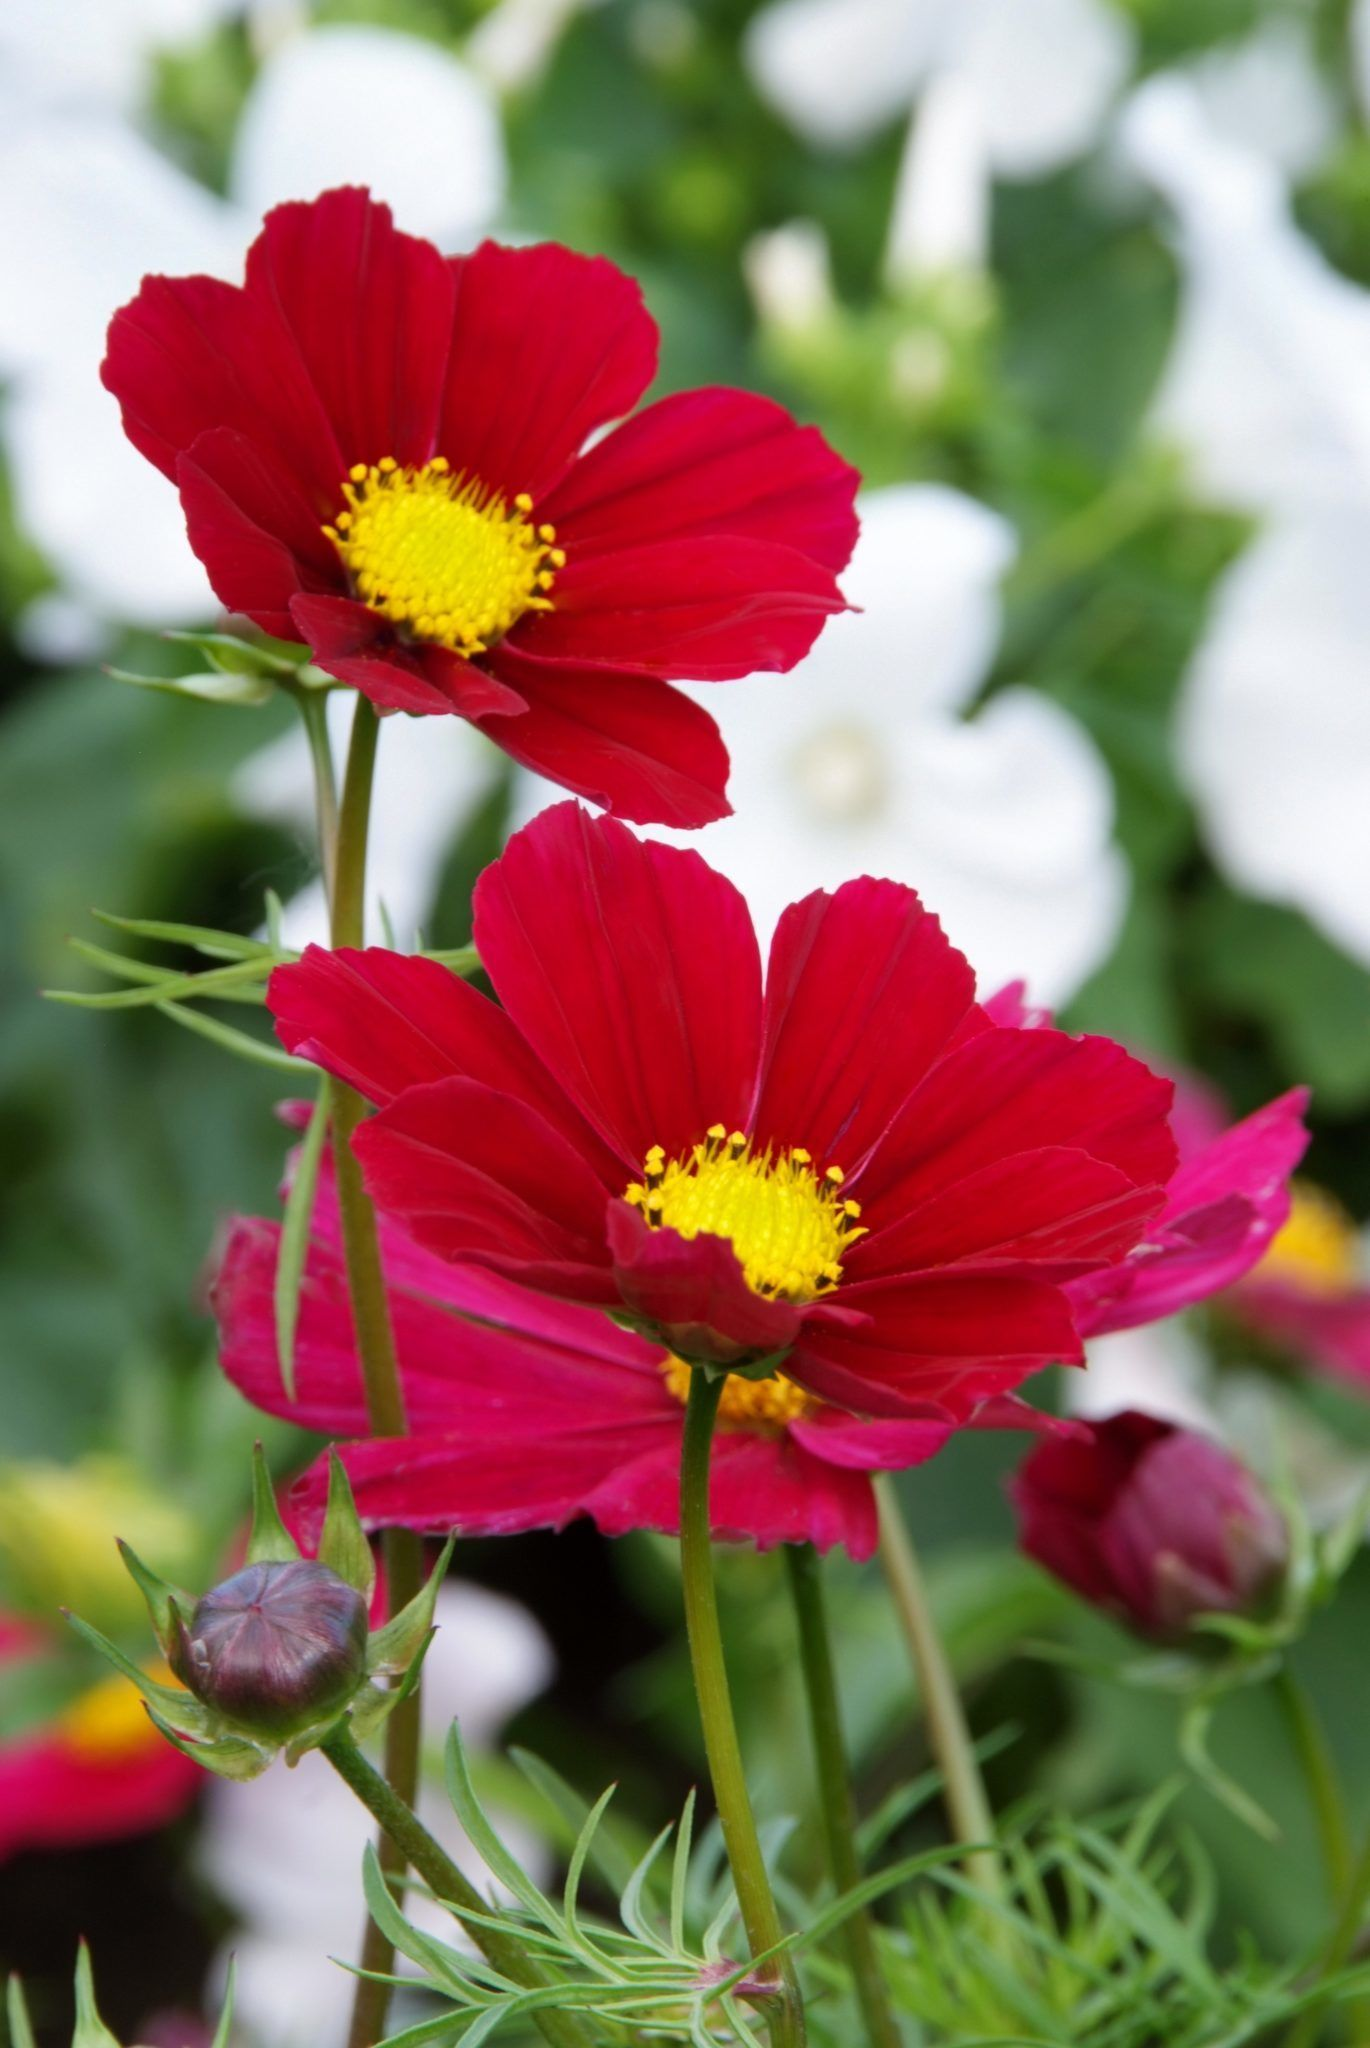 Pin by hng nguyn on cosmos flower pinterest cosmos and perennials perennials izmirmasajfo Gallery